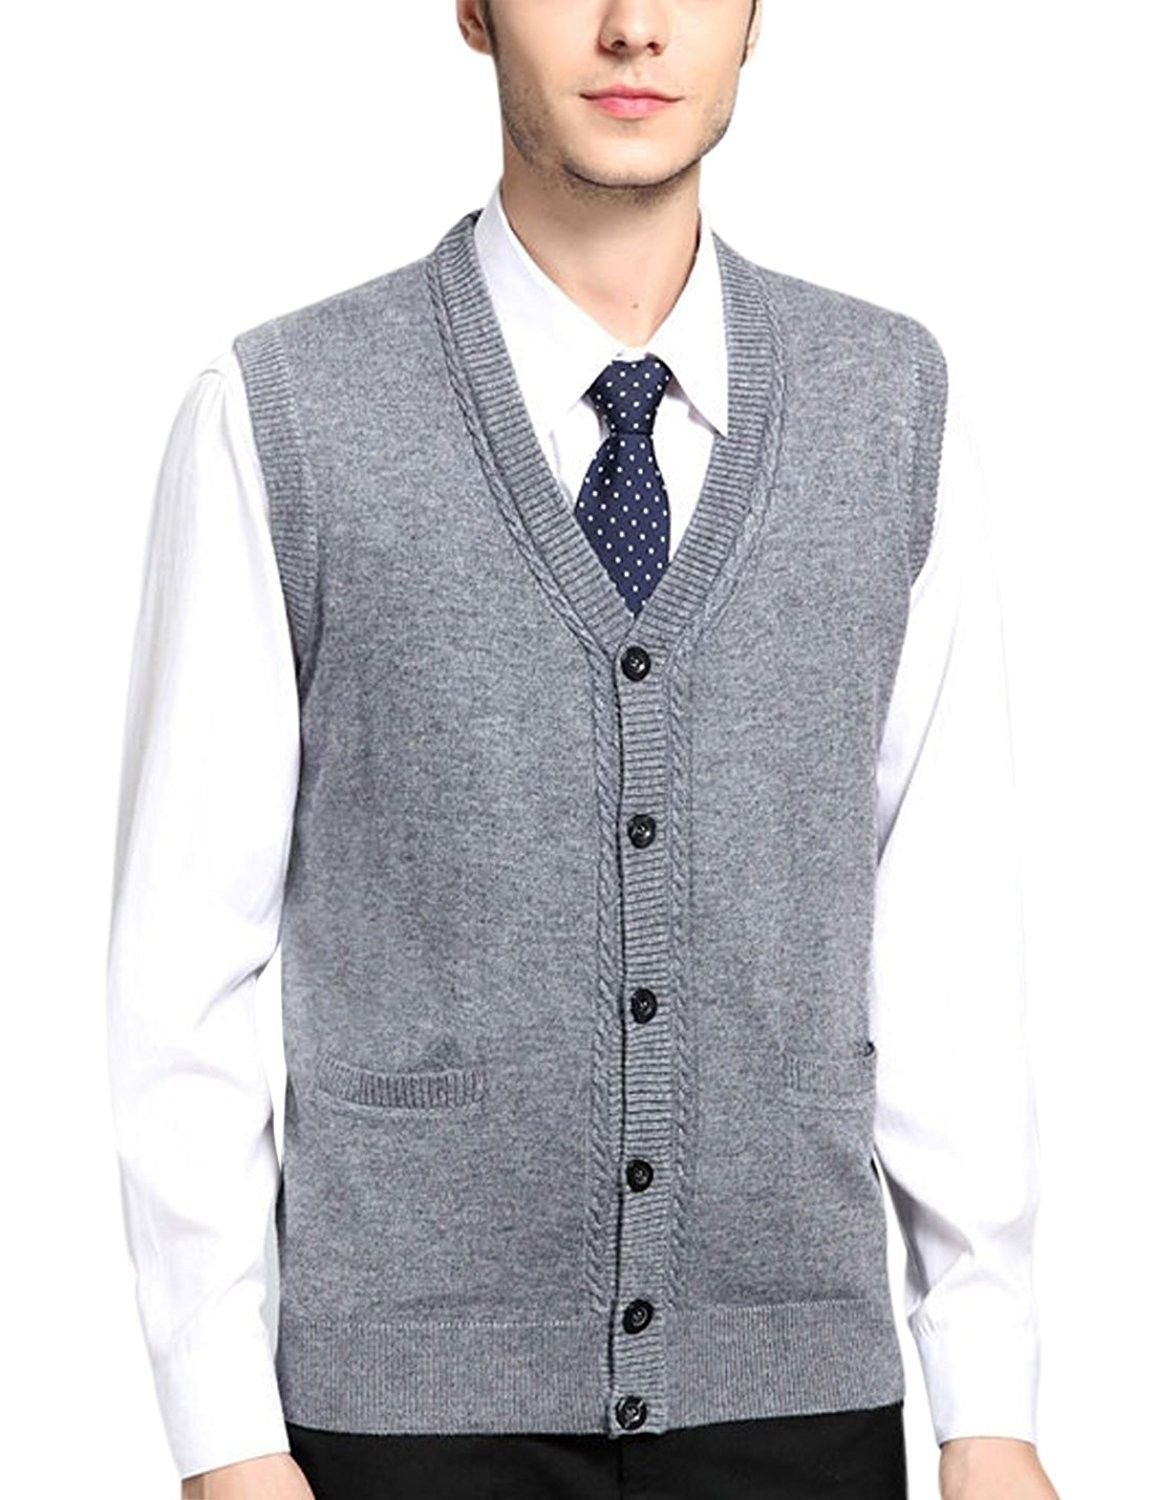 Men's V Neck Wool Cashmere Sleeveless Button Down Sweater